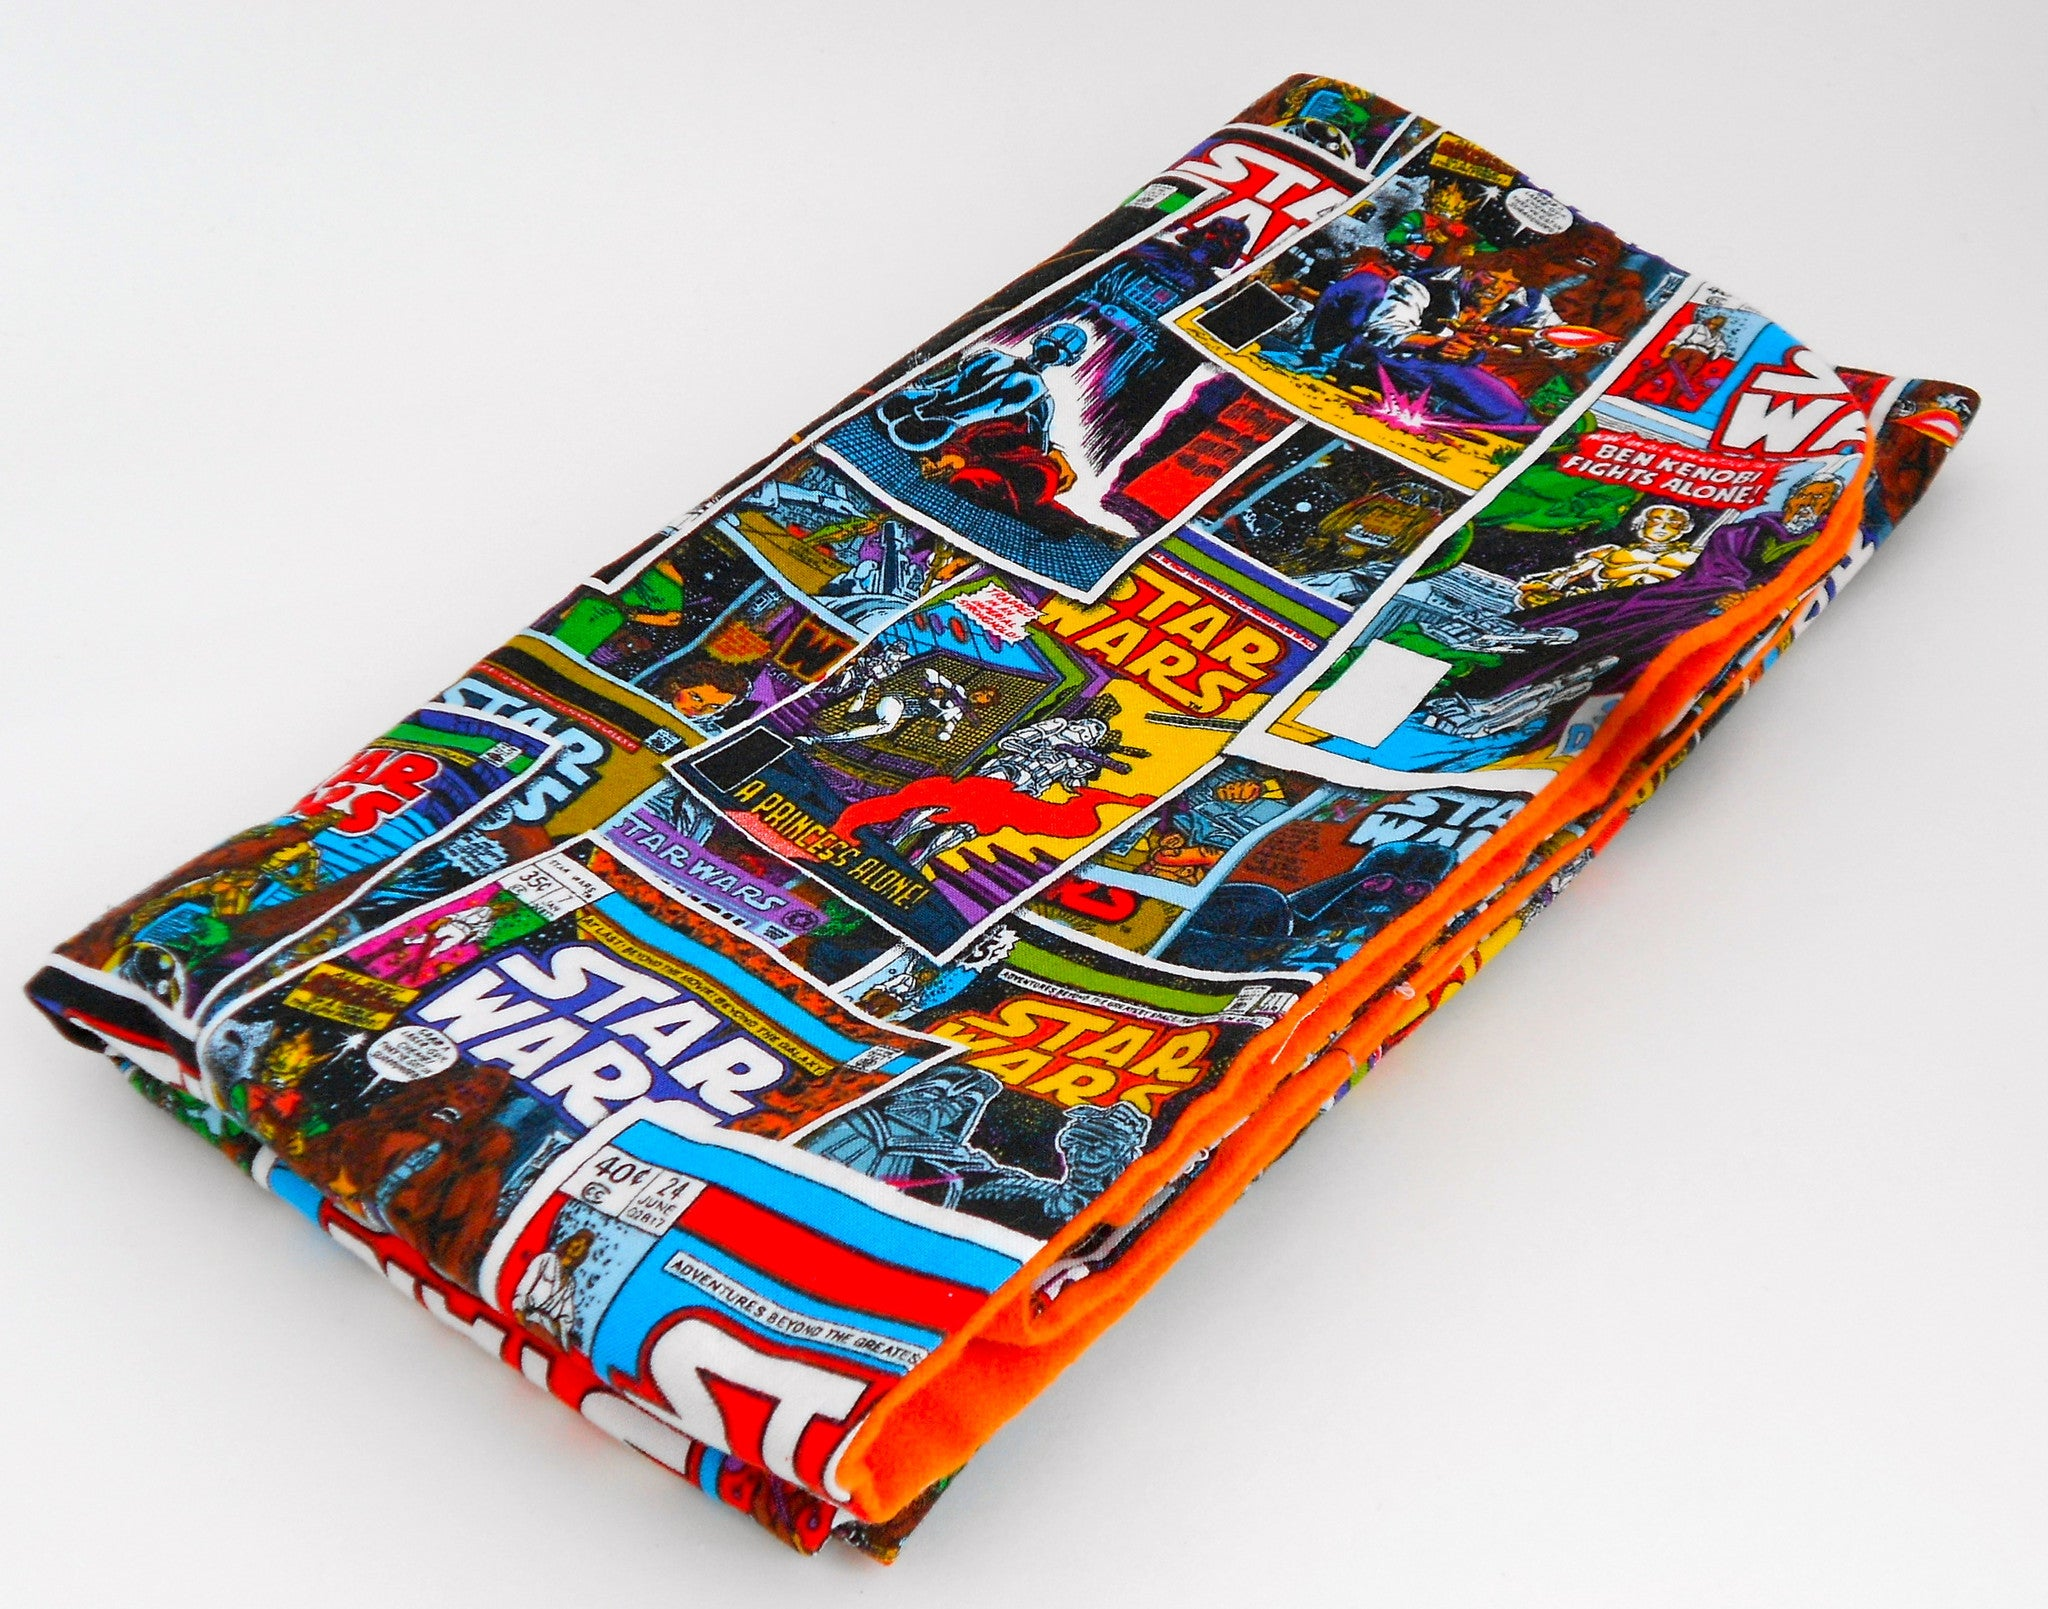 Star Wars Comic Book Blanket with Orange Flannel